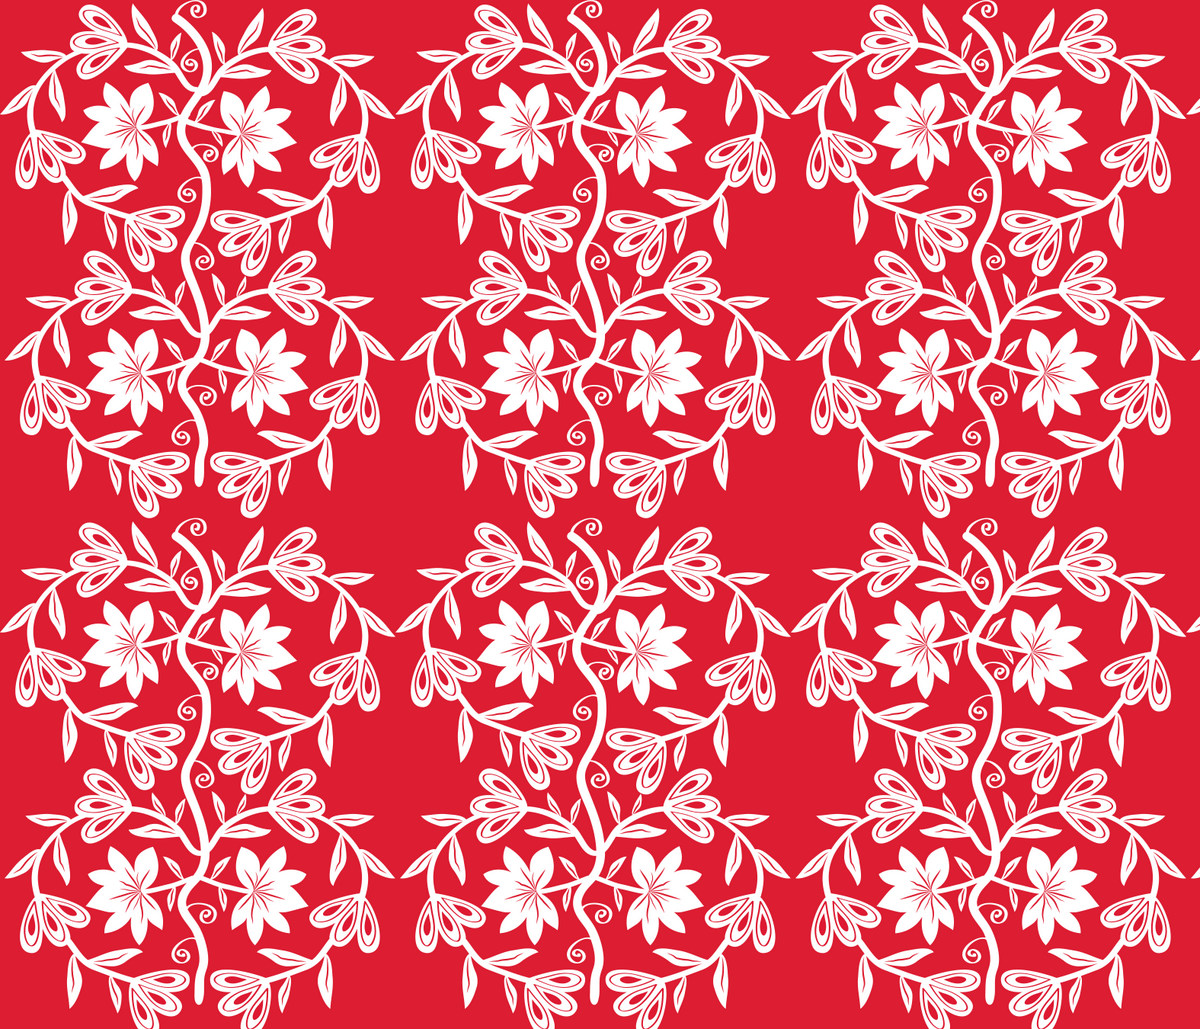 Chinese Fabric Patterns Awesome Inspiration Design